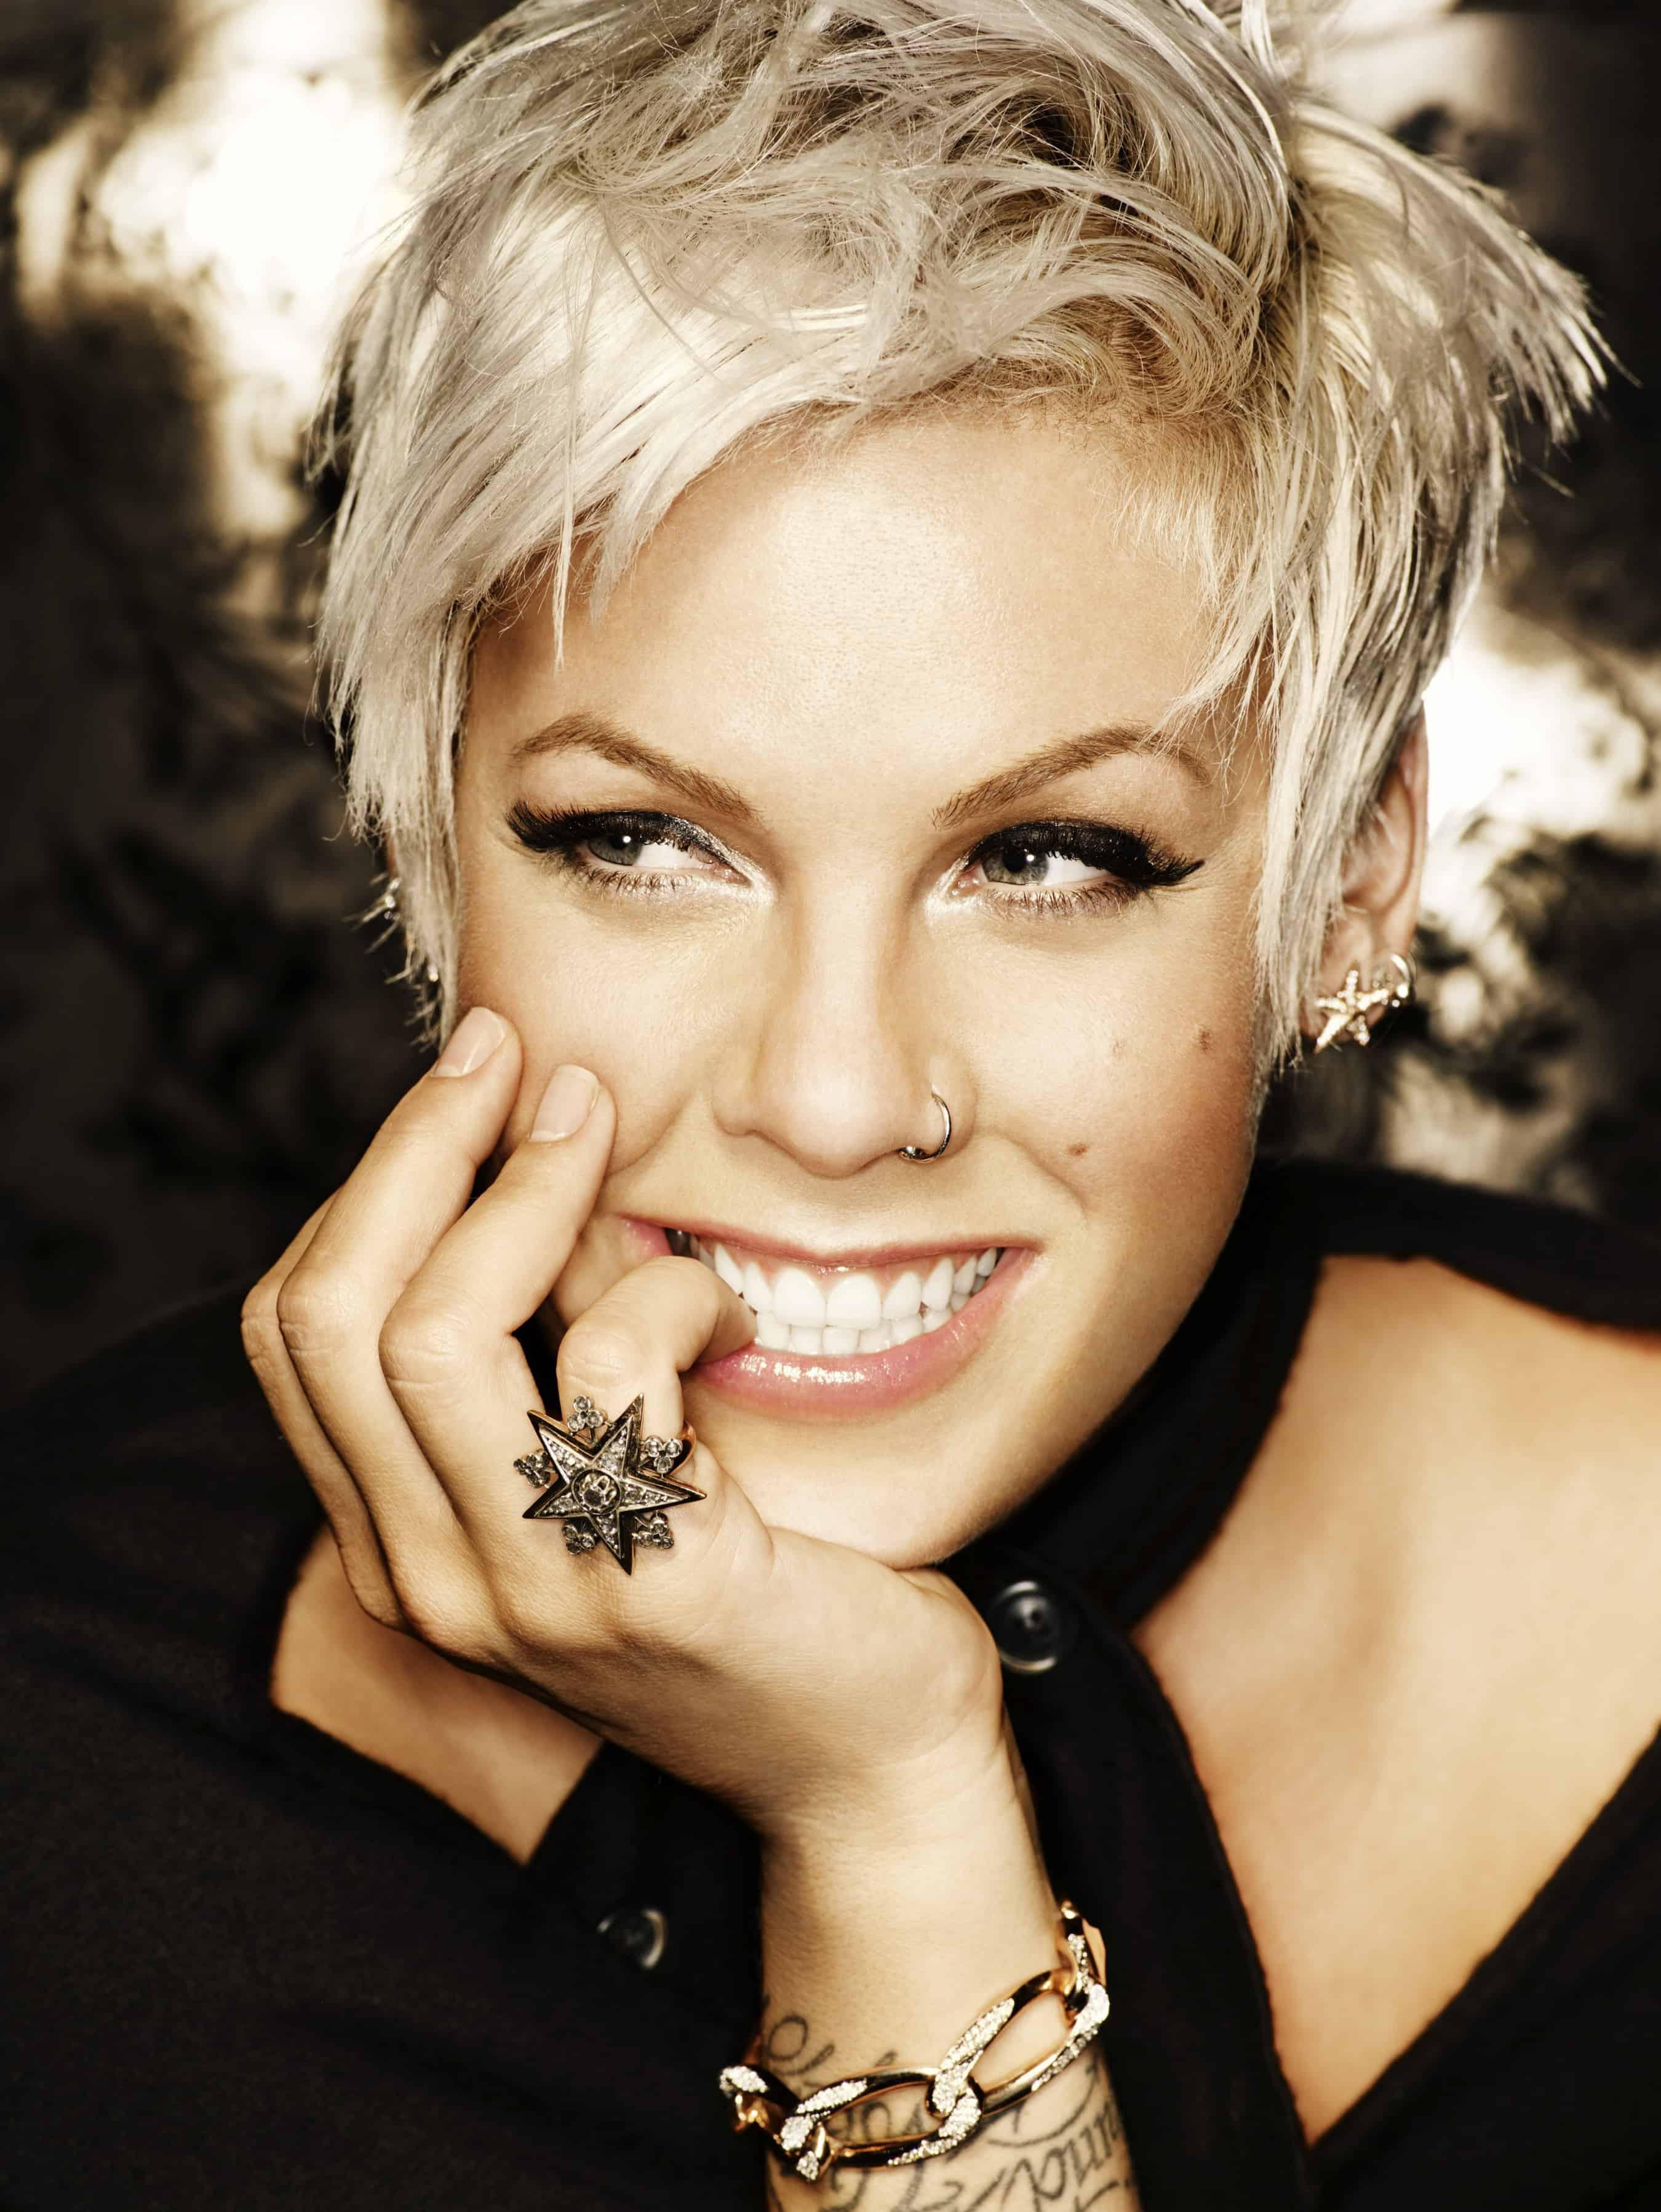 P!nk 2014 Hair 1000+ images about Pin...